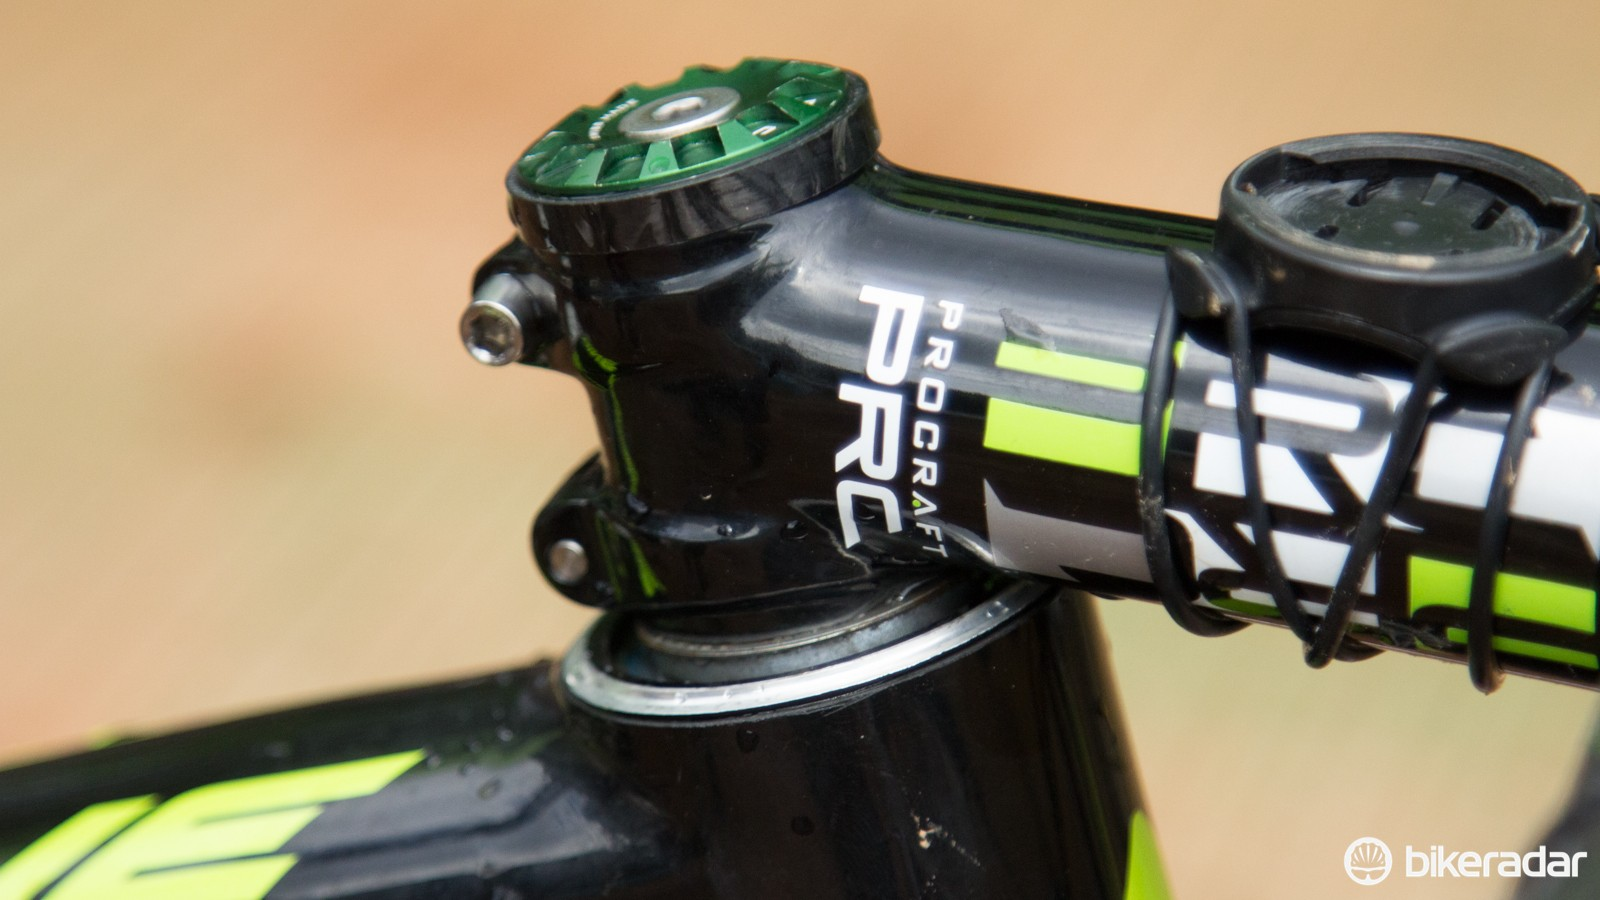 Getting down: Hermida rides with the headset bearings exposed in order to lower his handlebar height